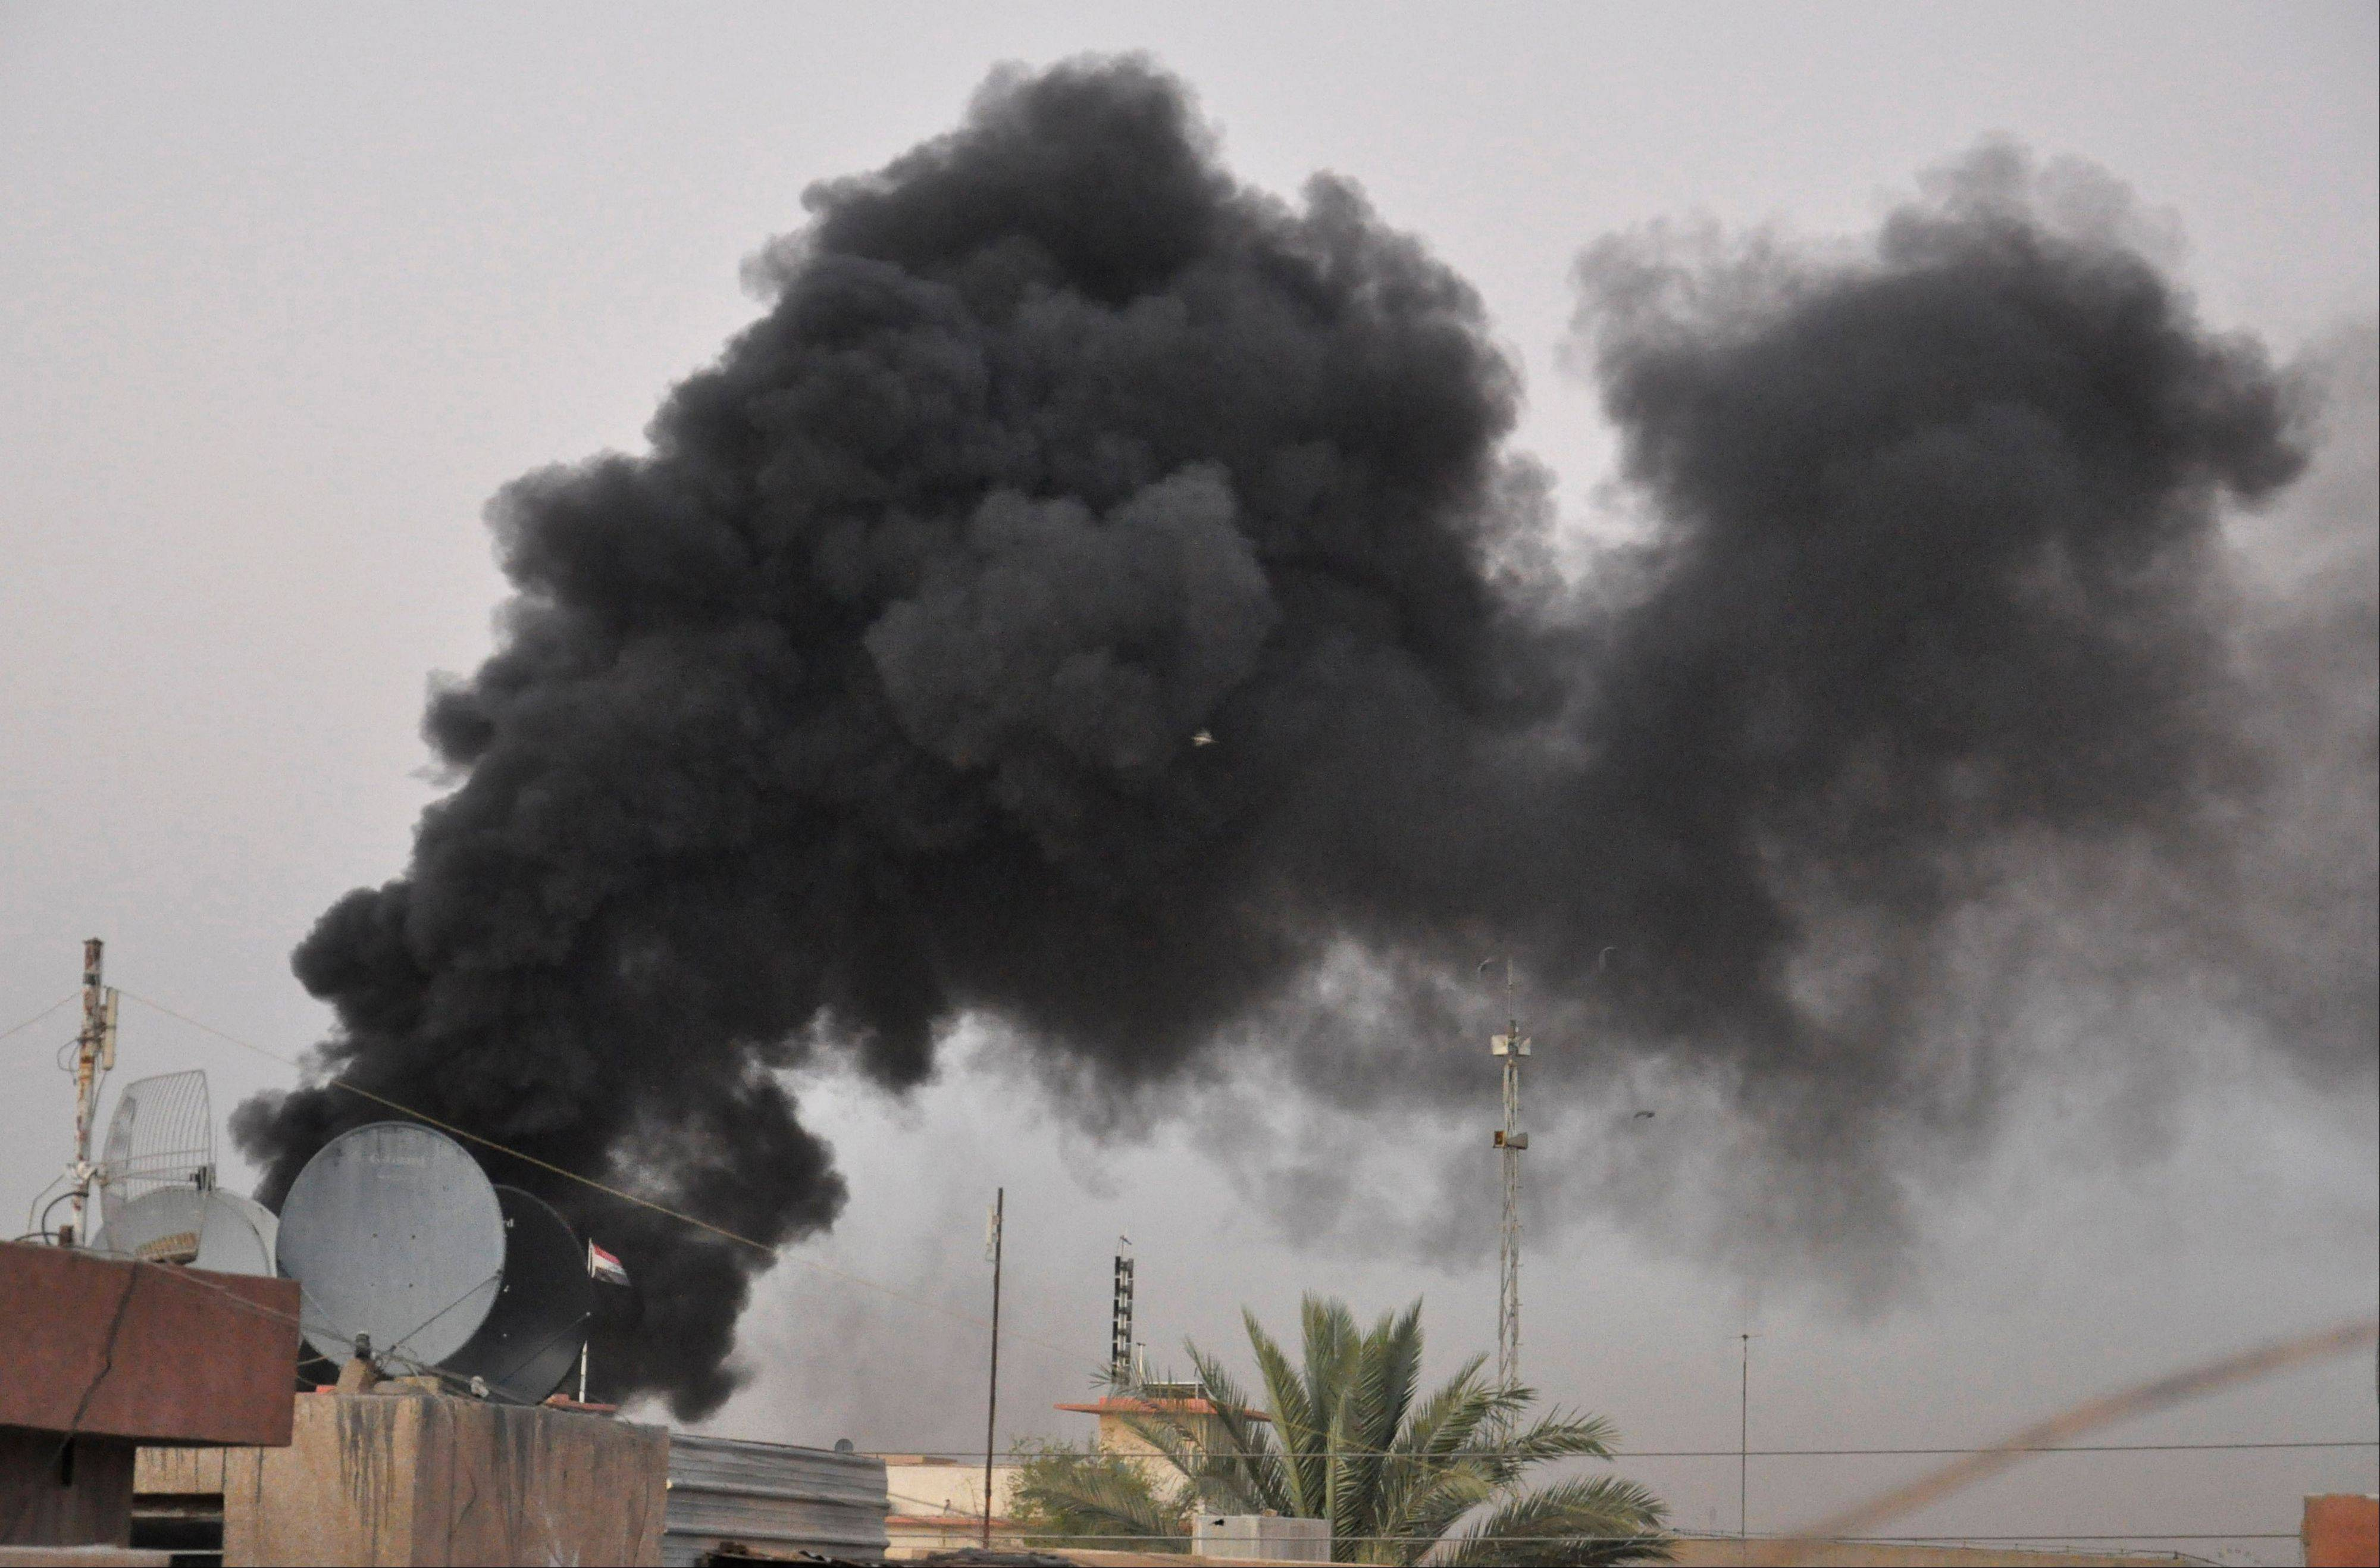 Black smoke from a car bomb attack marks the site Saturday in Baghdad. A wave of car bombings targeted cafes and markets around the Iraqi capital of Baghdad as people celebrate the end of the Muslim holy month of Ramadan, killing and wounding scores of people, officials said.